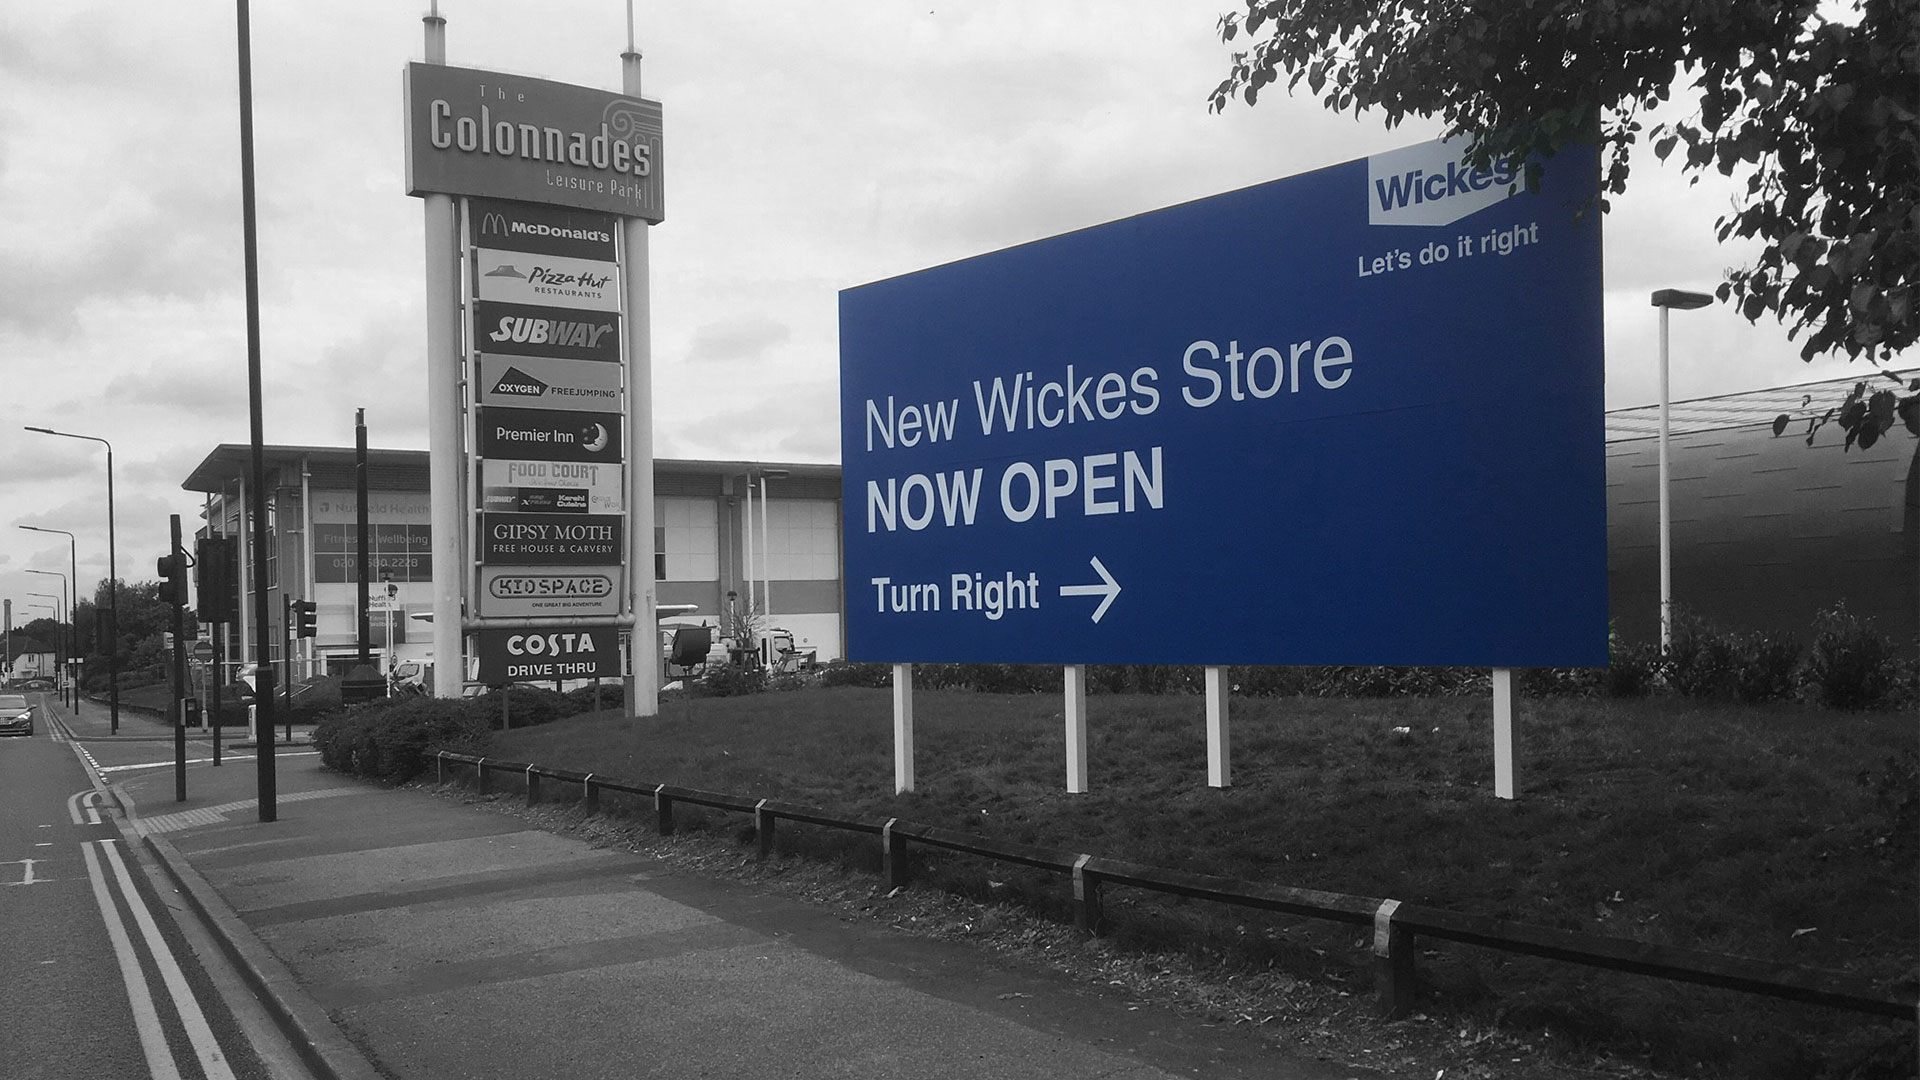 Wickes Signage